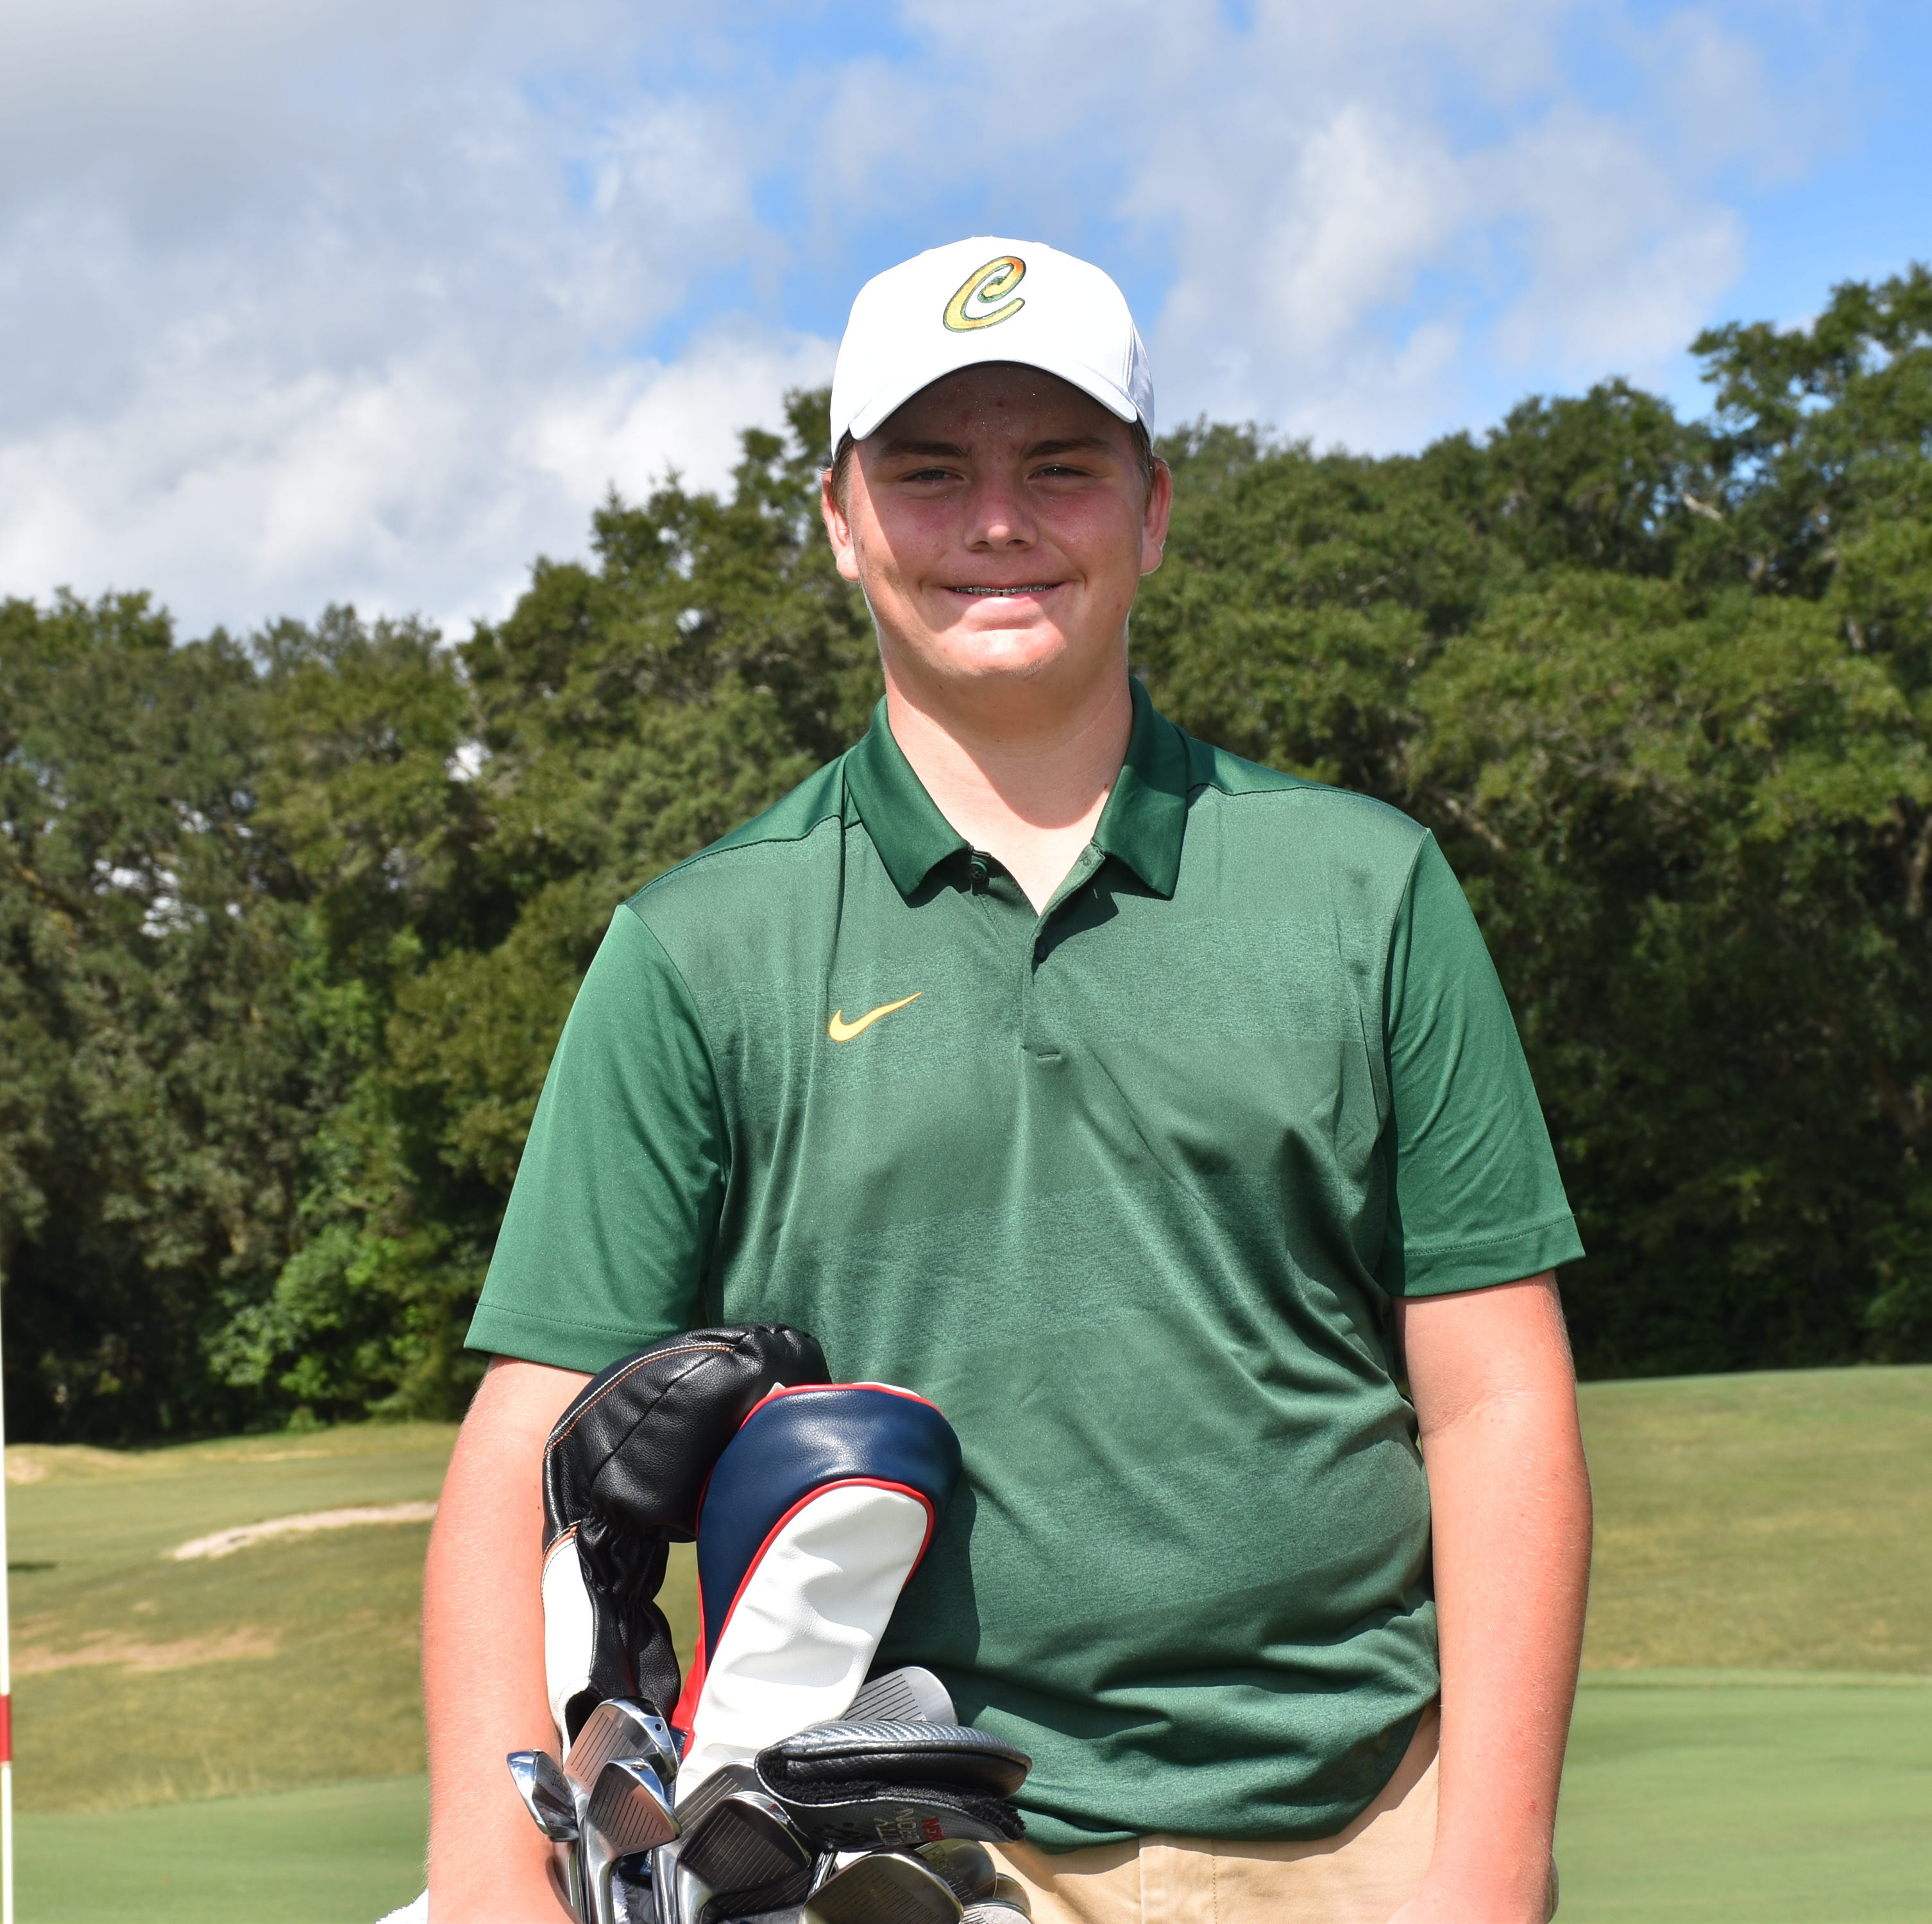 Pensacola Catholic freshman Justin Burroughs in front of the par-4, 313-yard No. 9 hole at Osceola Golf Course where he produced a hole-in-one Tuesday with his tee shot to win the District 1-1A boys golf championship.